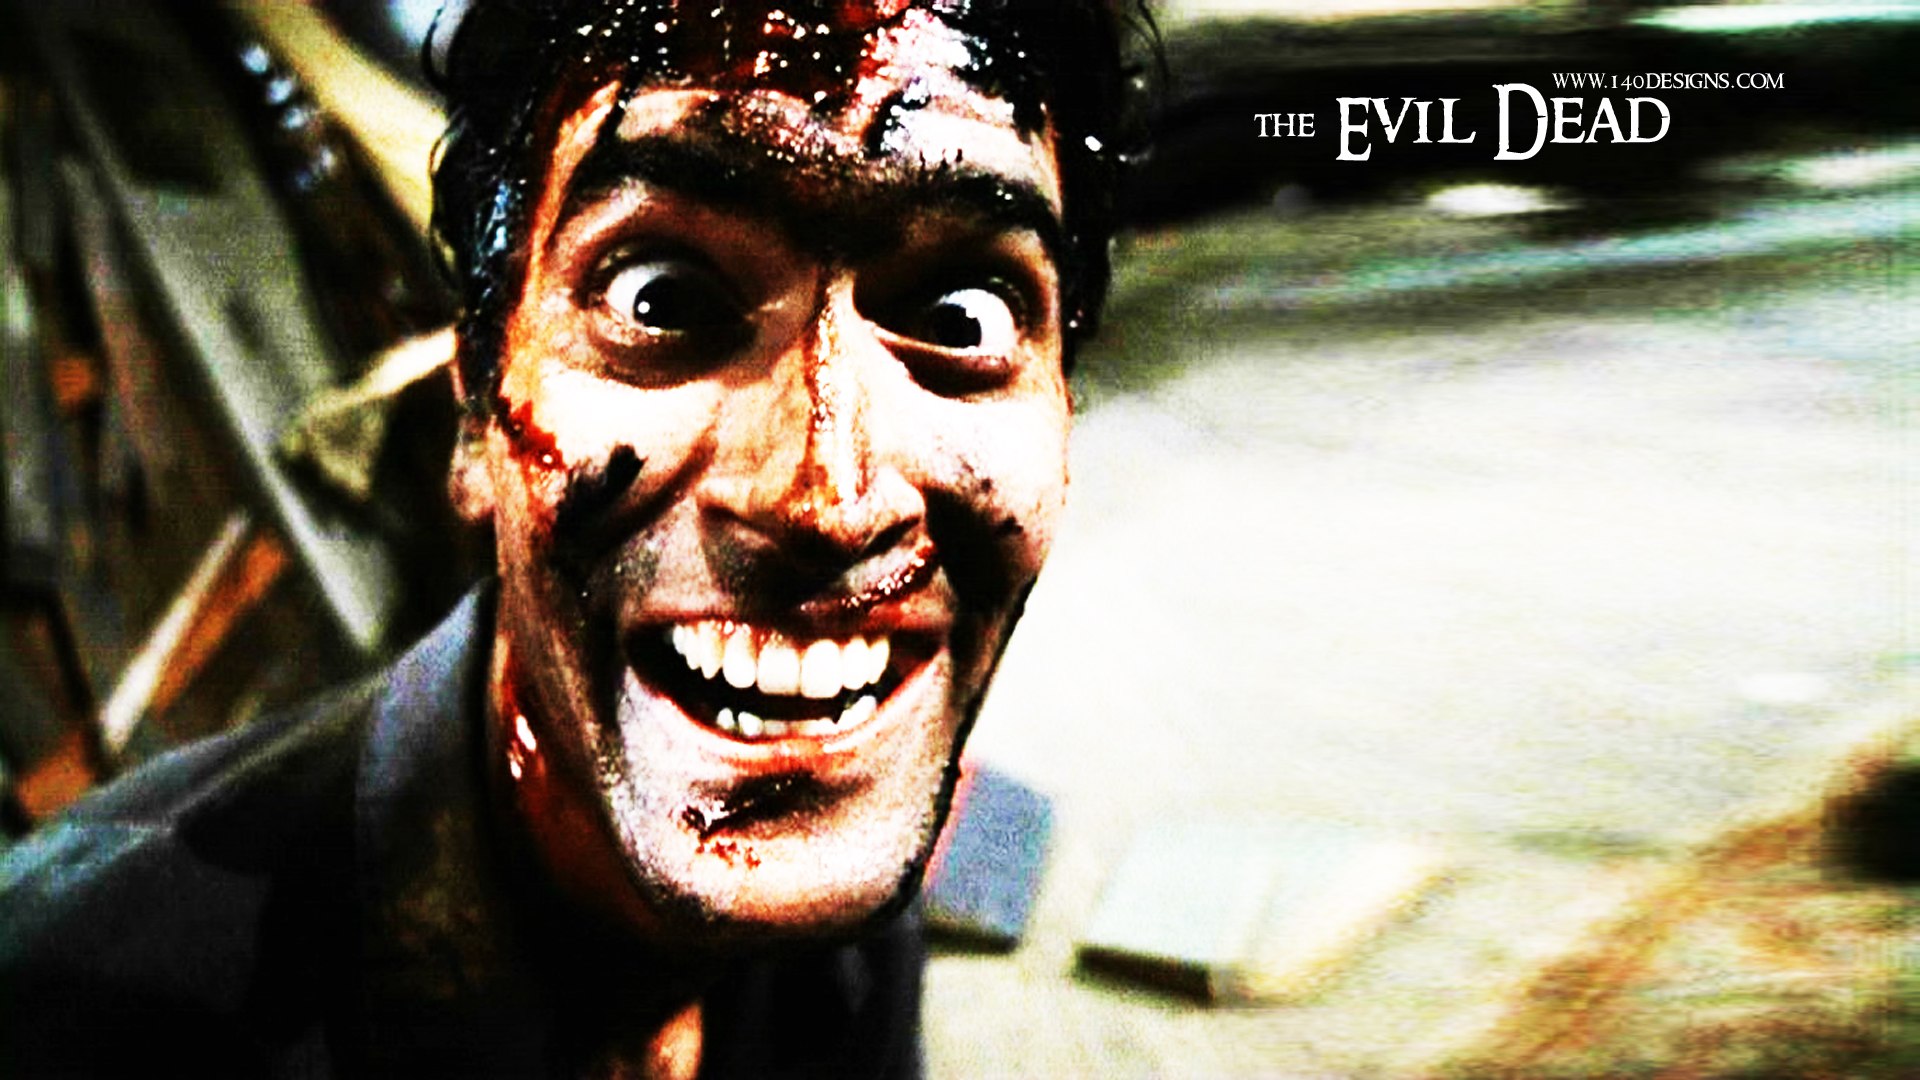 Evil Dead Images EVIL DEAD BY MRFGROOVYYYYY HD Wallpaper And Background Photos